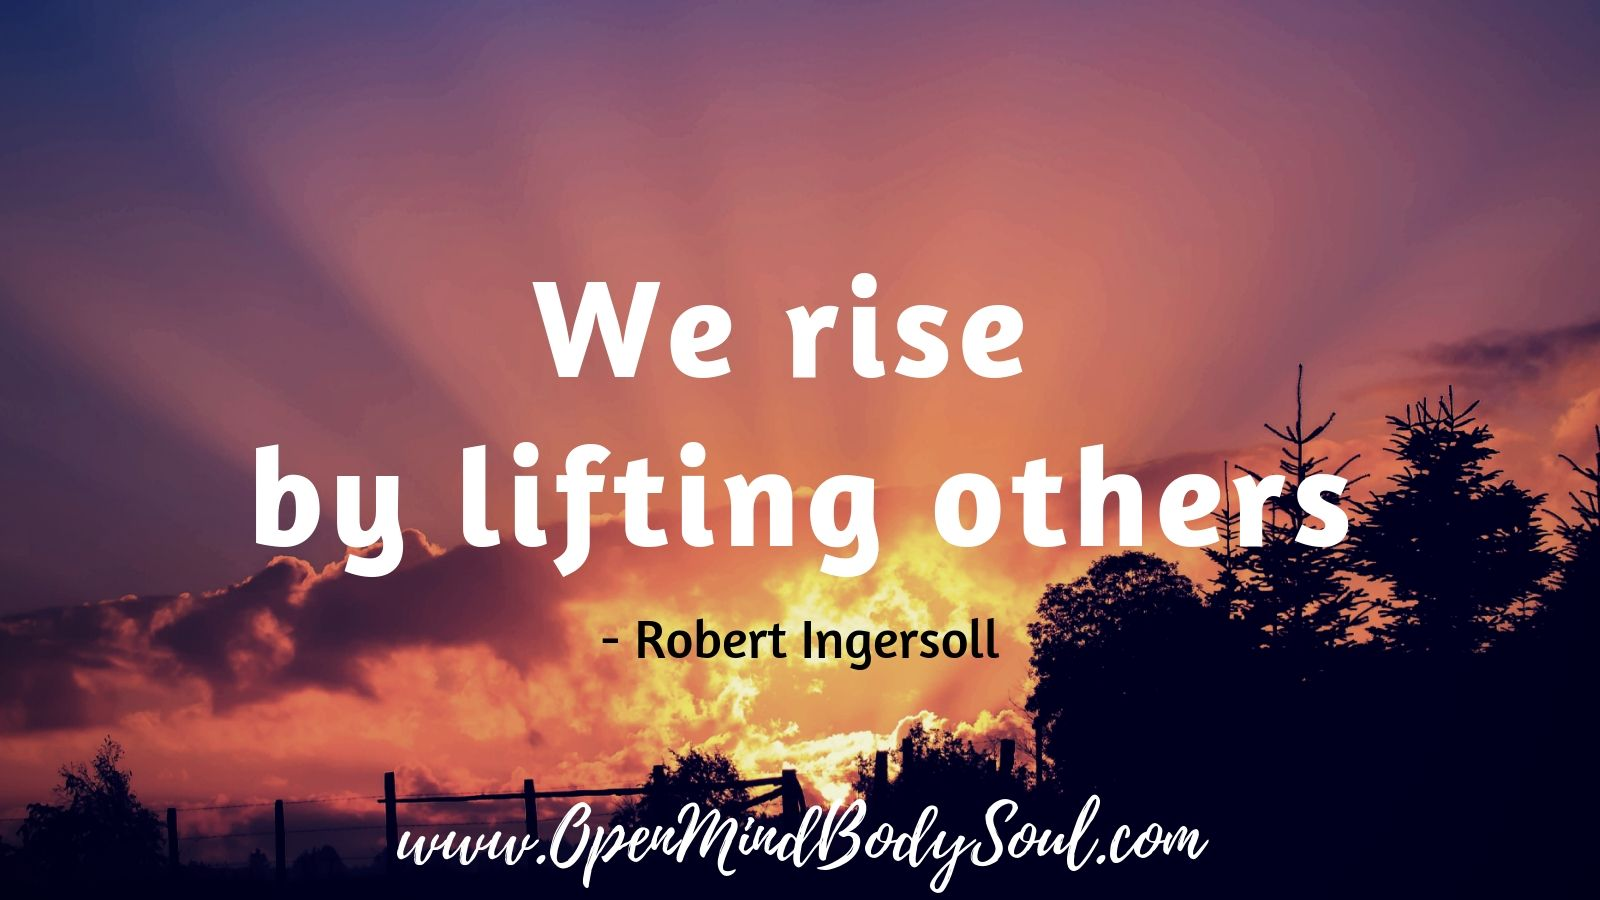 we-rise-by-lifting-others-management-quote.jpg